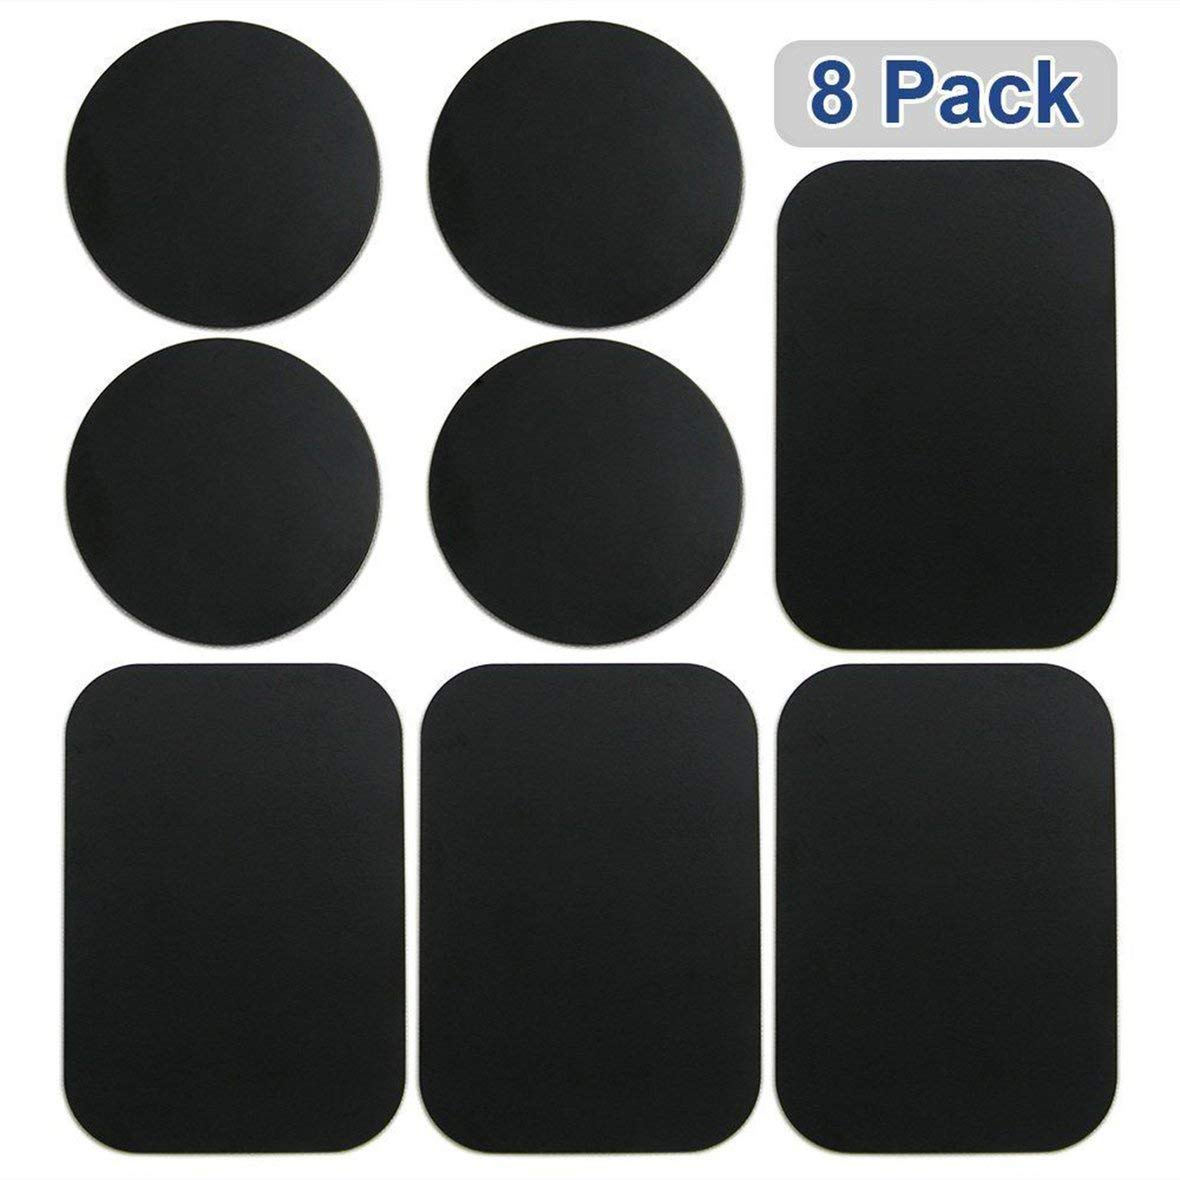 Tivolii 8pcs Metal Plates Sticker Car Mount Replace Metal Adhesive Plate for Magnetic Phone Car Holder Super Thin Steel Insert Plate